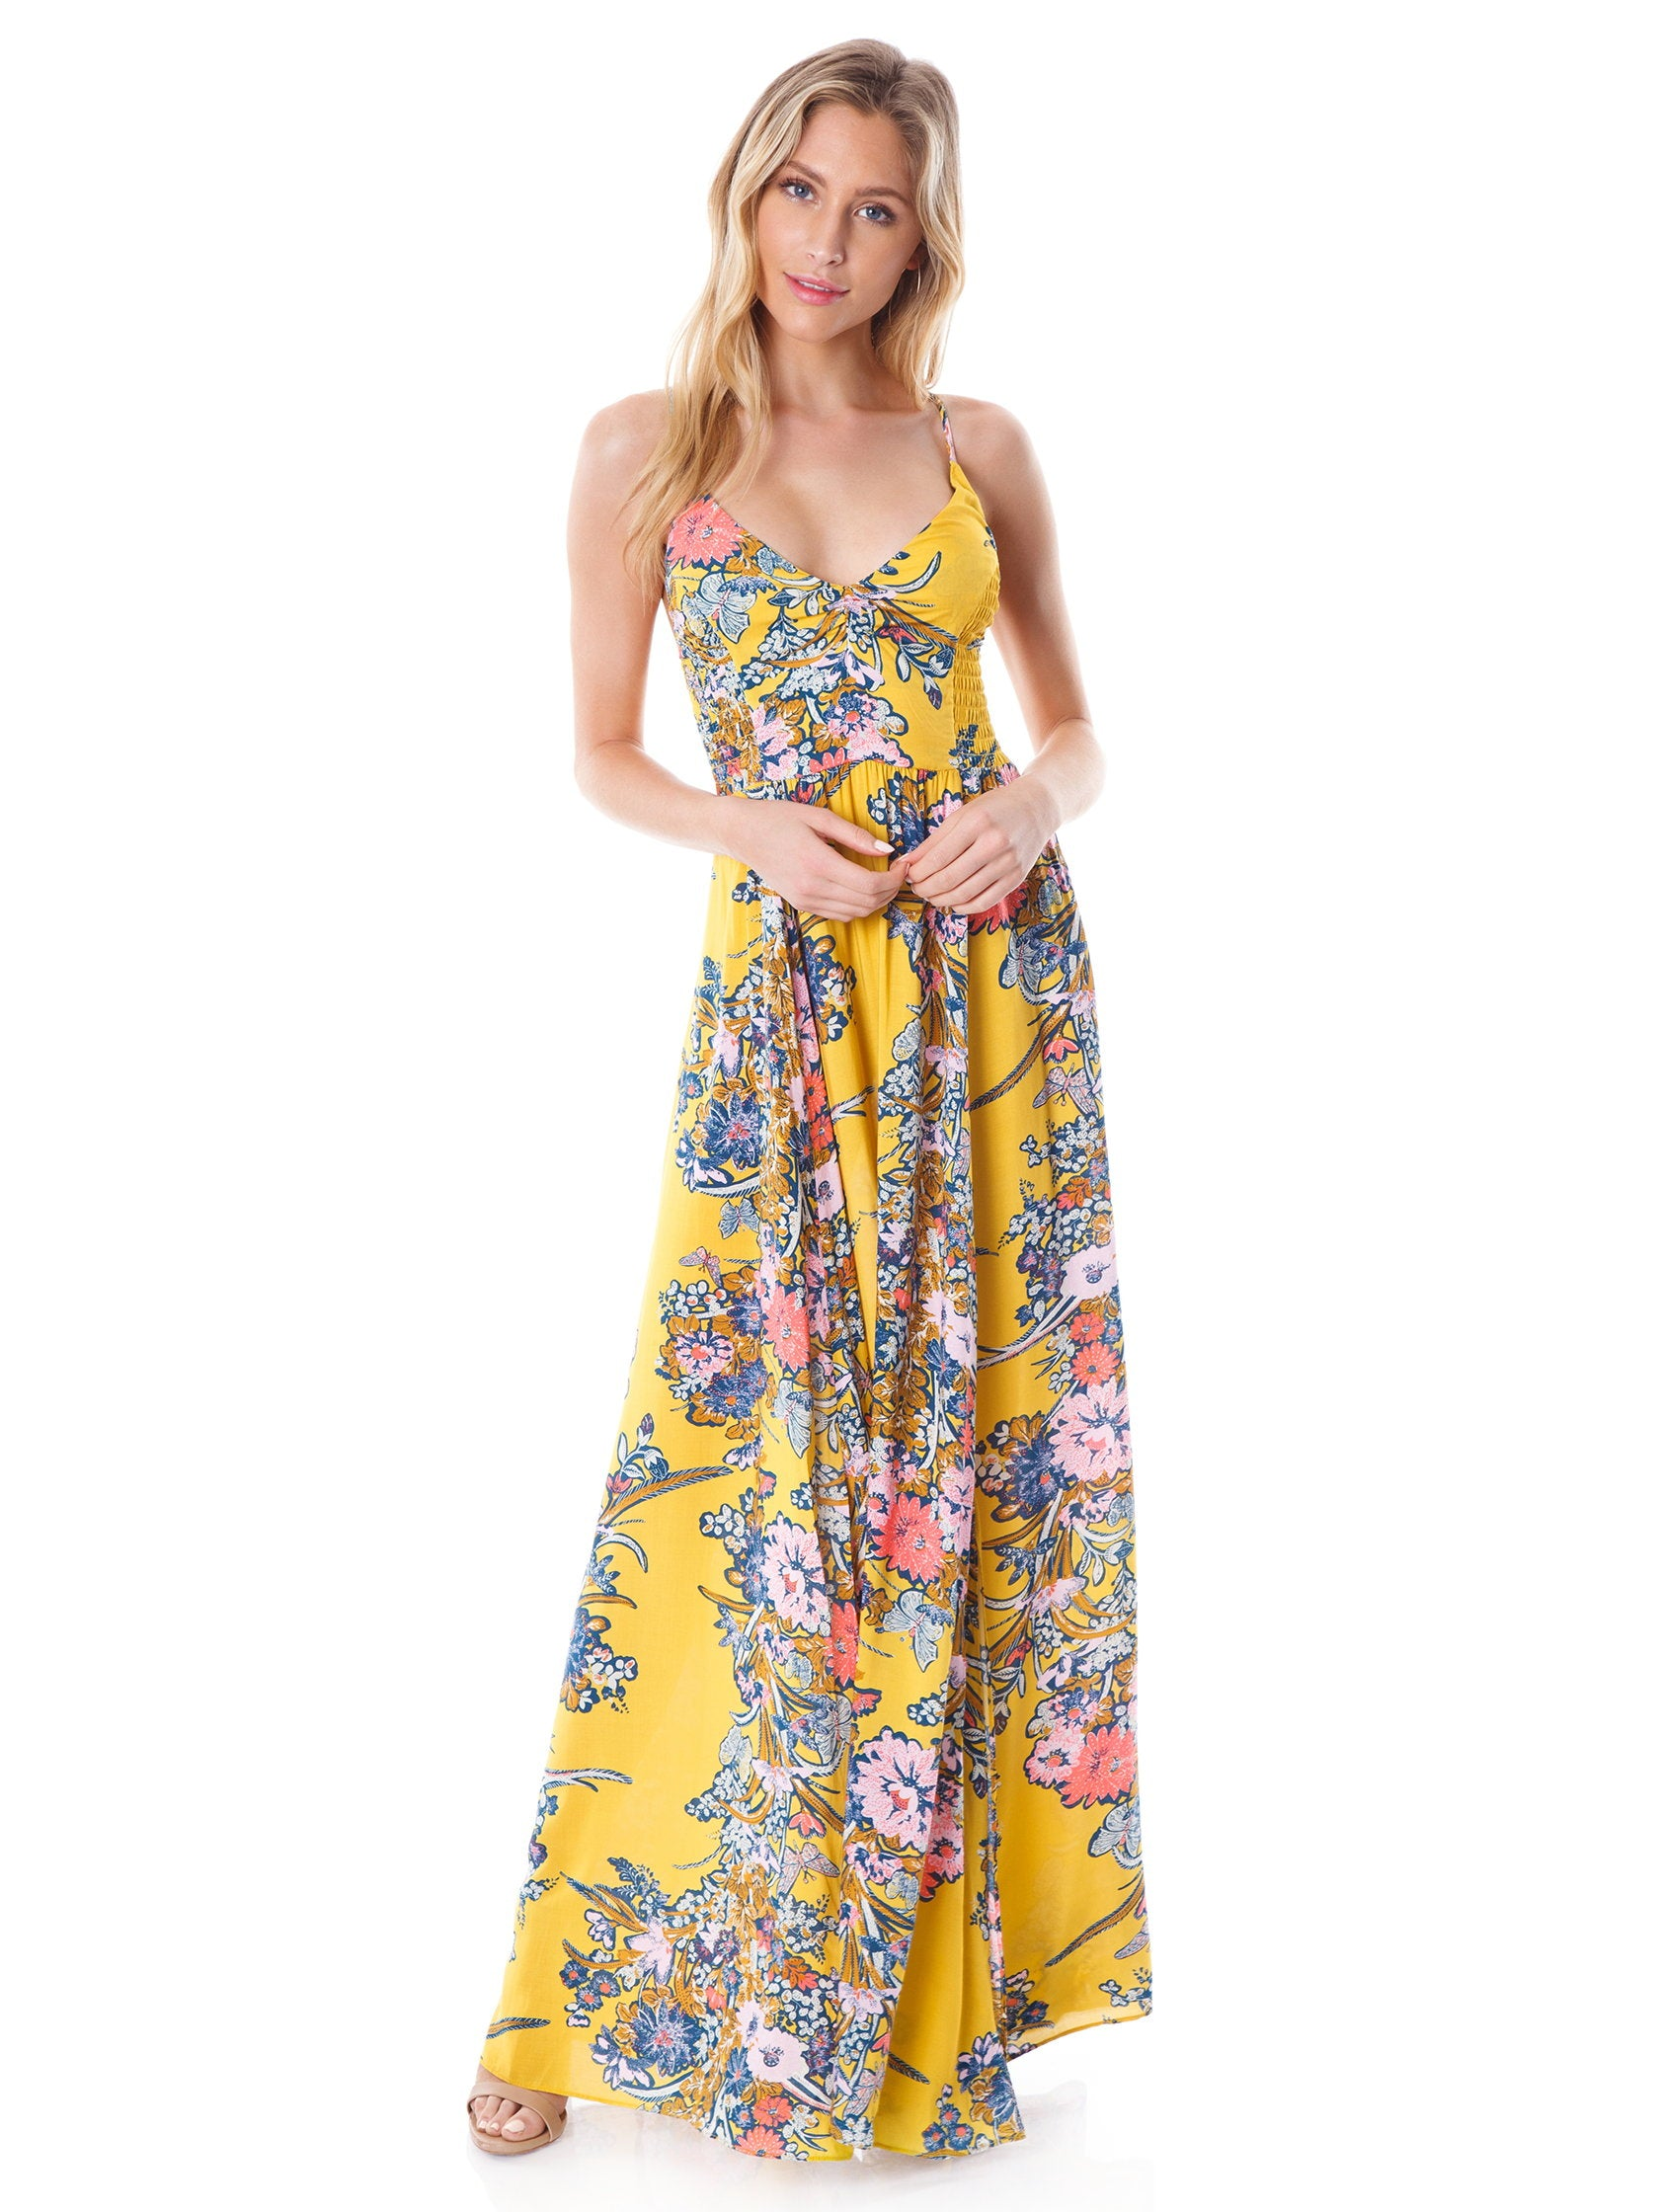 5915cbdf575a Girl outfit in a dress rental from Free People called Through The Vine  Printed Maxi Dress